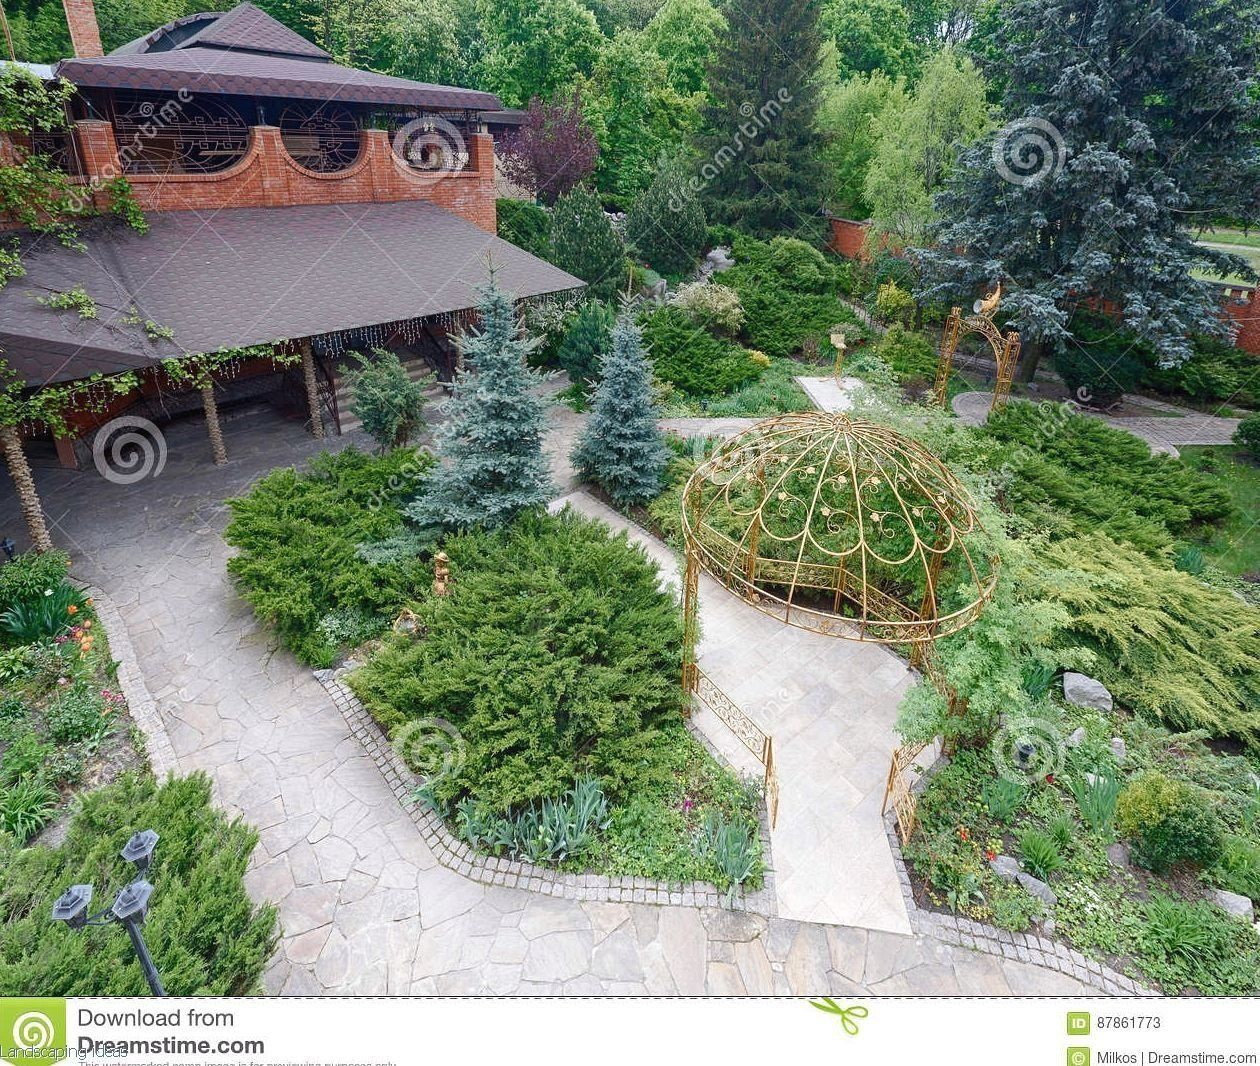 Backyard Landscaping Ideas From Dublin And Cork Backyard Designers Landscape D In 2020 Landscape Design Courses Landscape Design Modern Landscape Design Front Yard